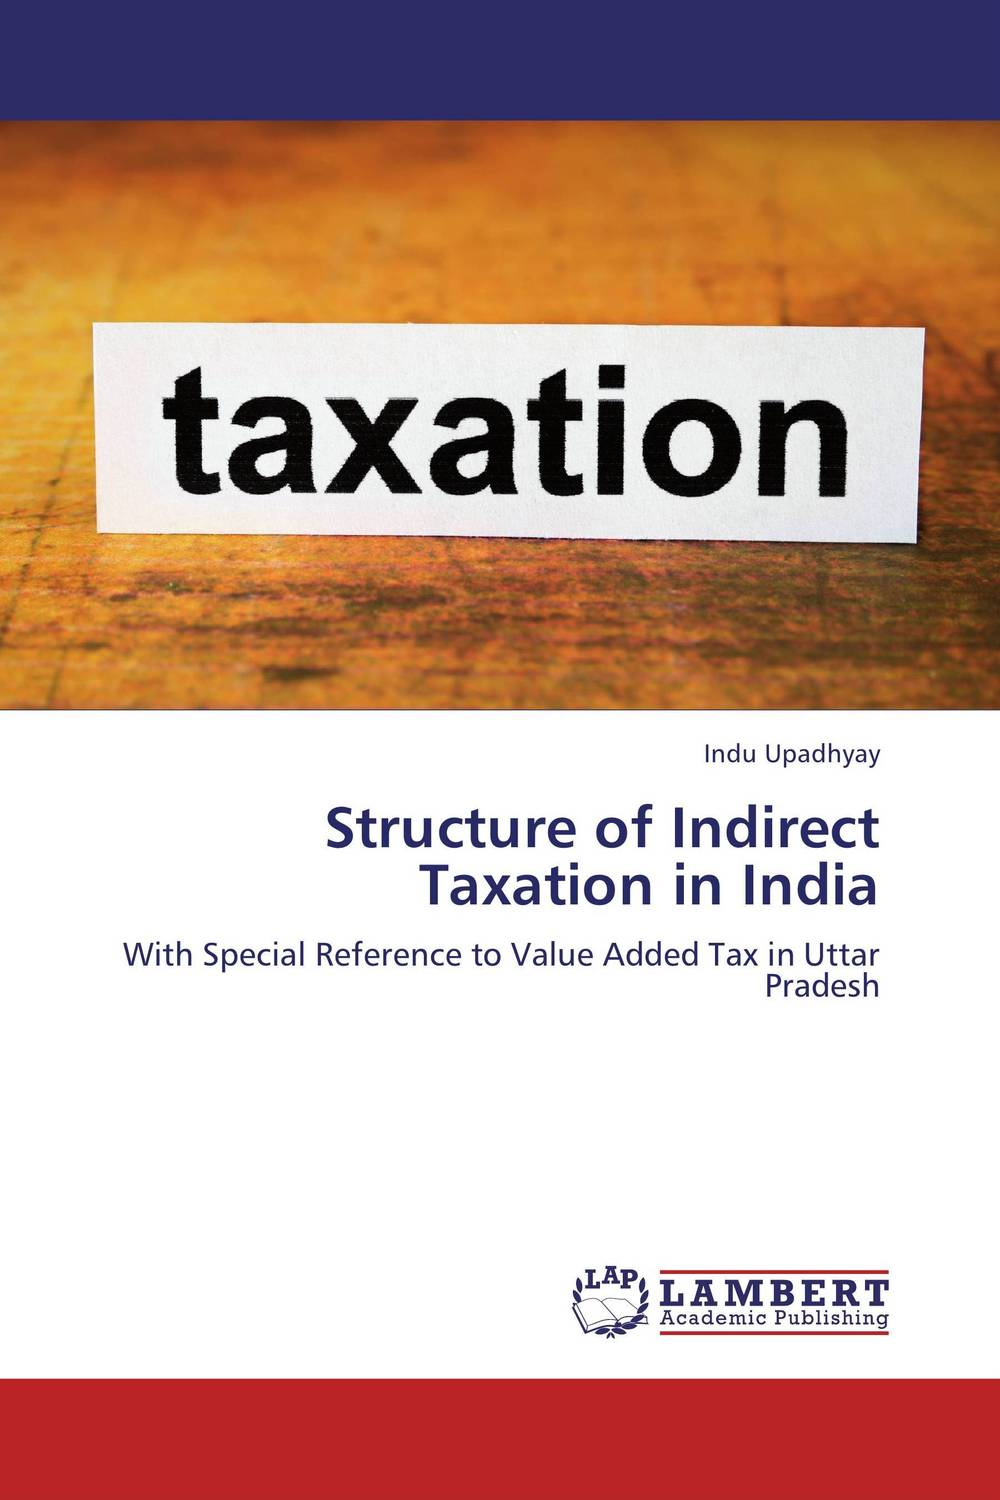 Structure of Indirect Taxation in India